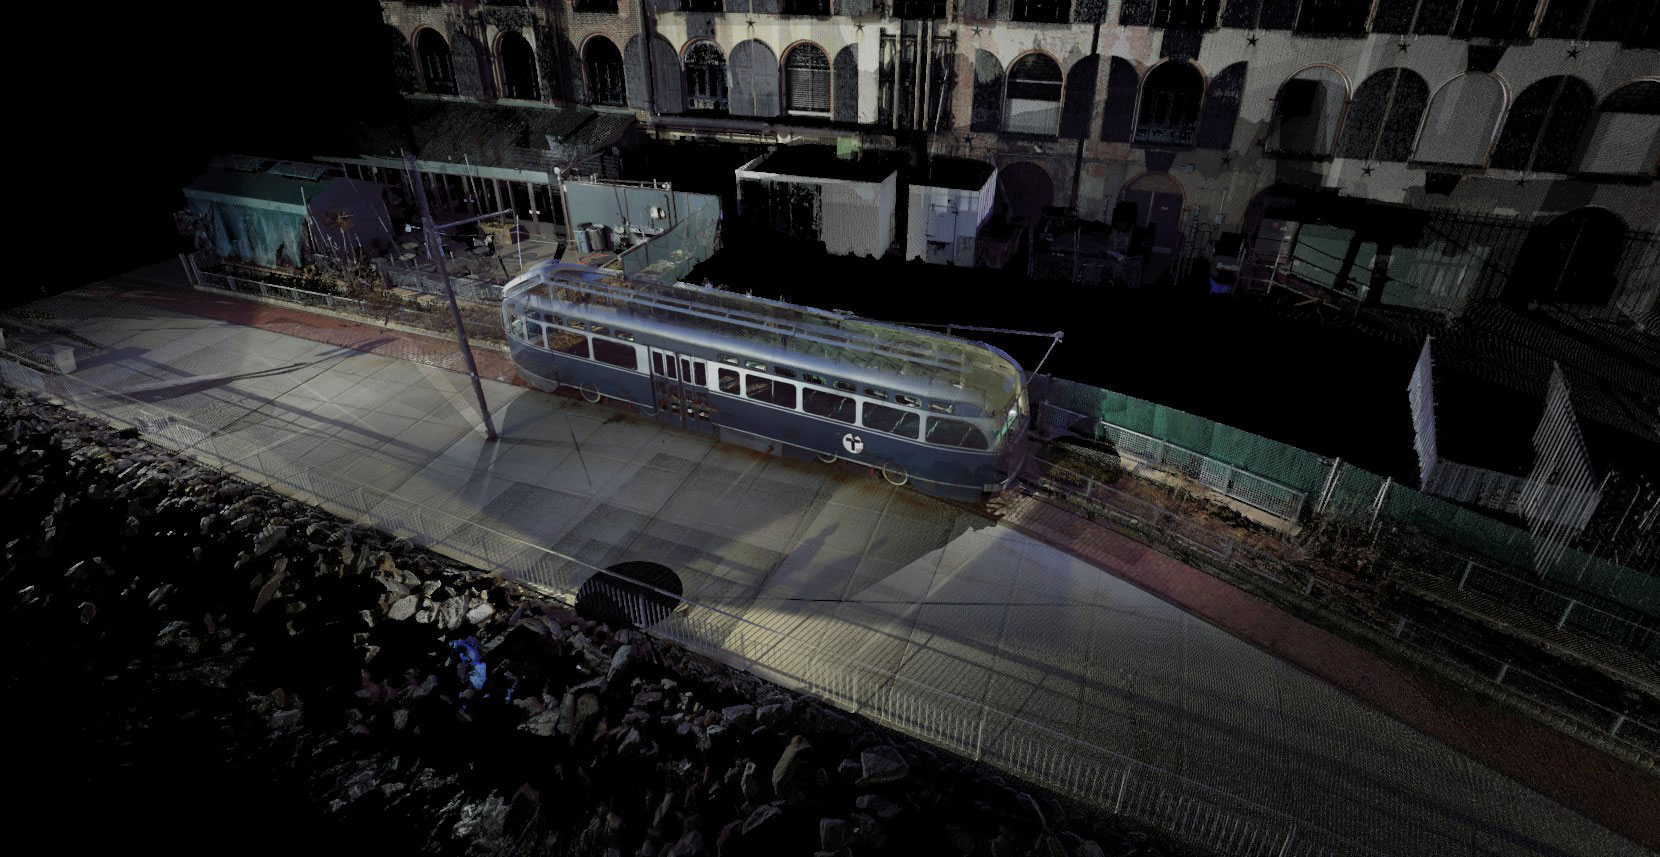 myndworkshop-3D-laser-scanning-point-cloud-red-hook-brooklyn-new-york-city-trolley-4.jpg